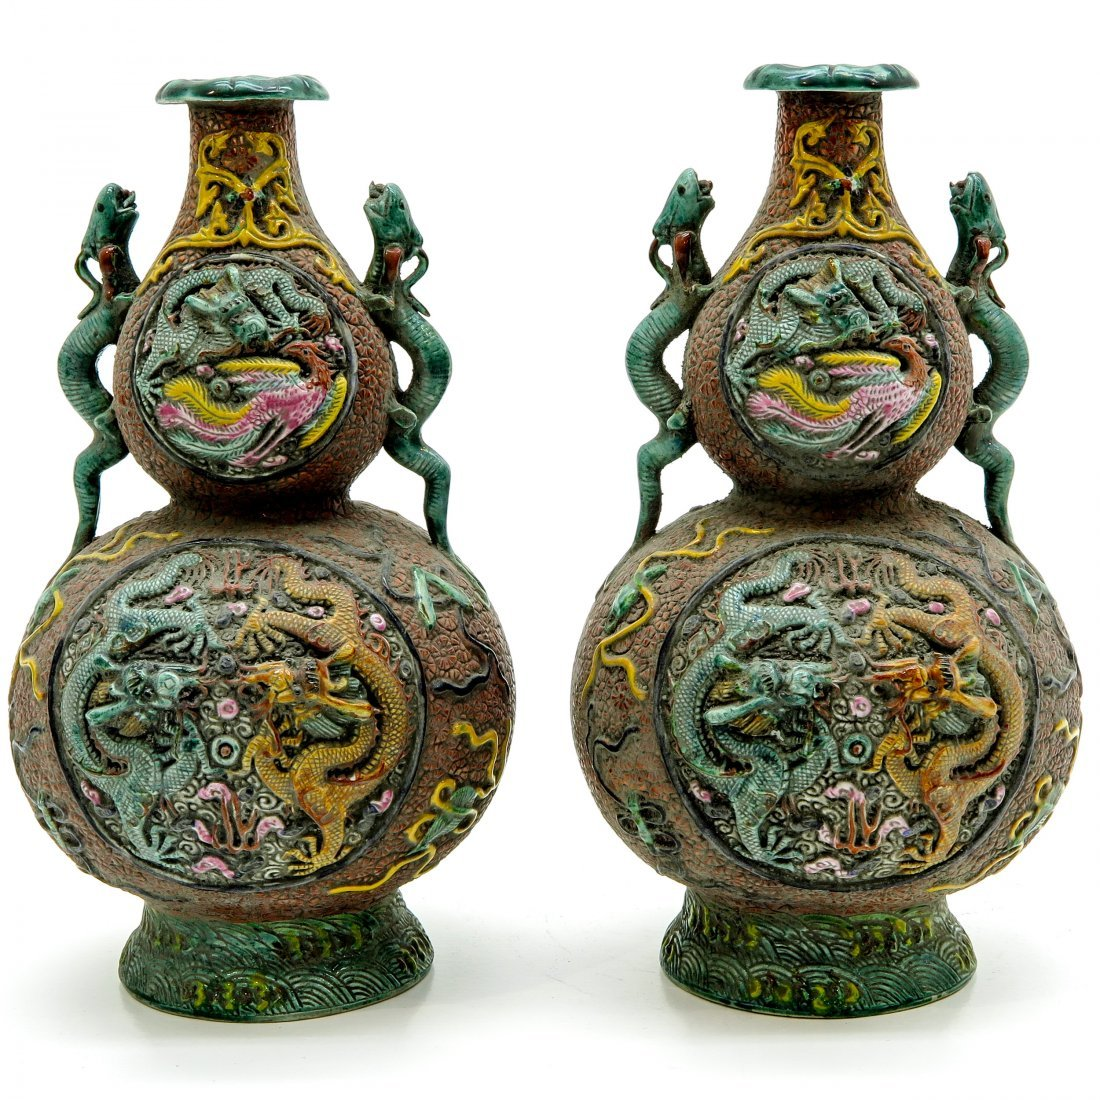 Lot of 19th Century China Porcelain Vases - 3